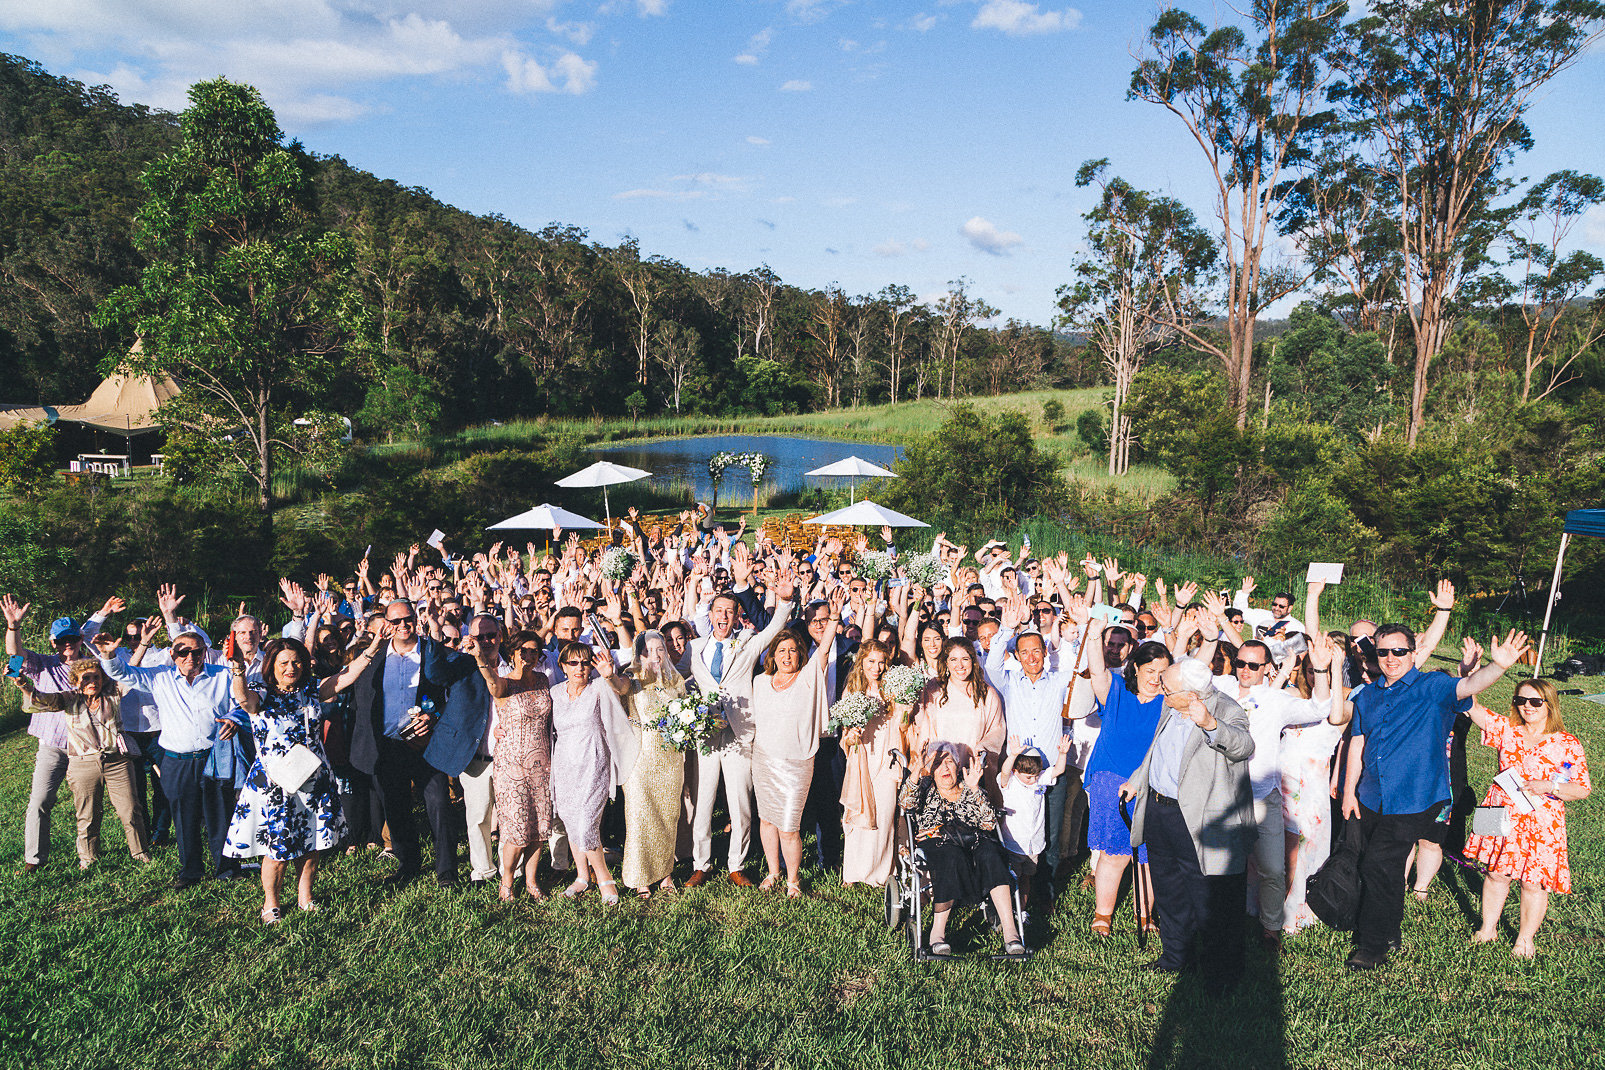 Gold Coast wedding, tipi wedding, gold coast, large marquee, event hire, tipi hire, wedding reception